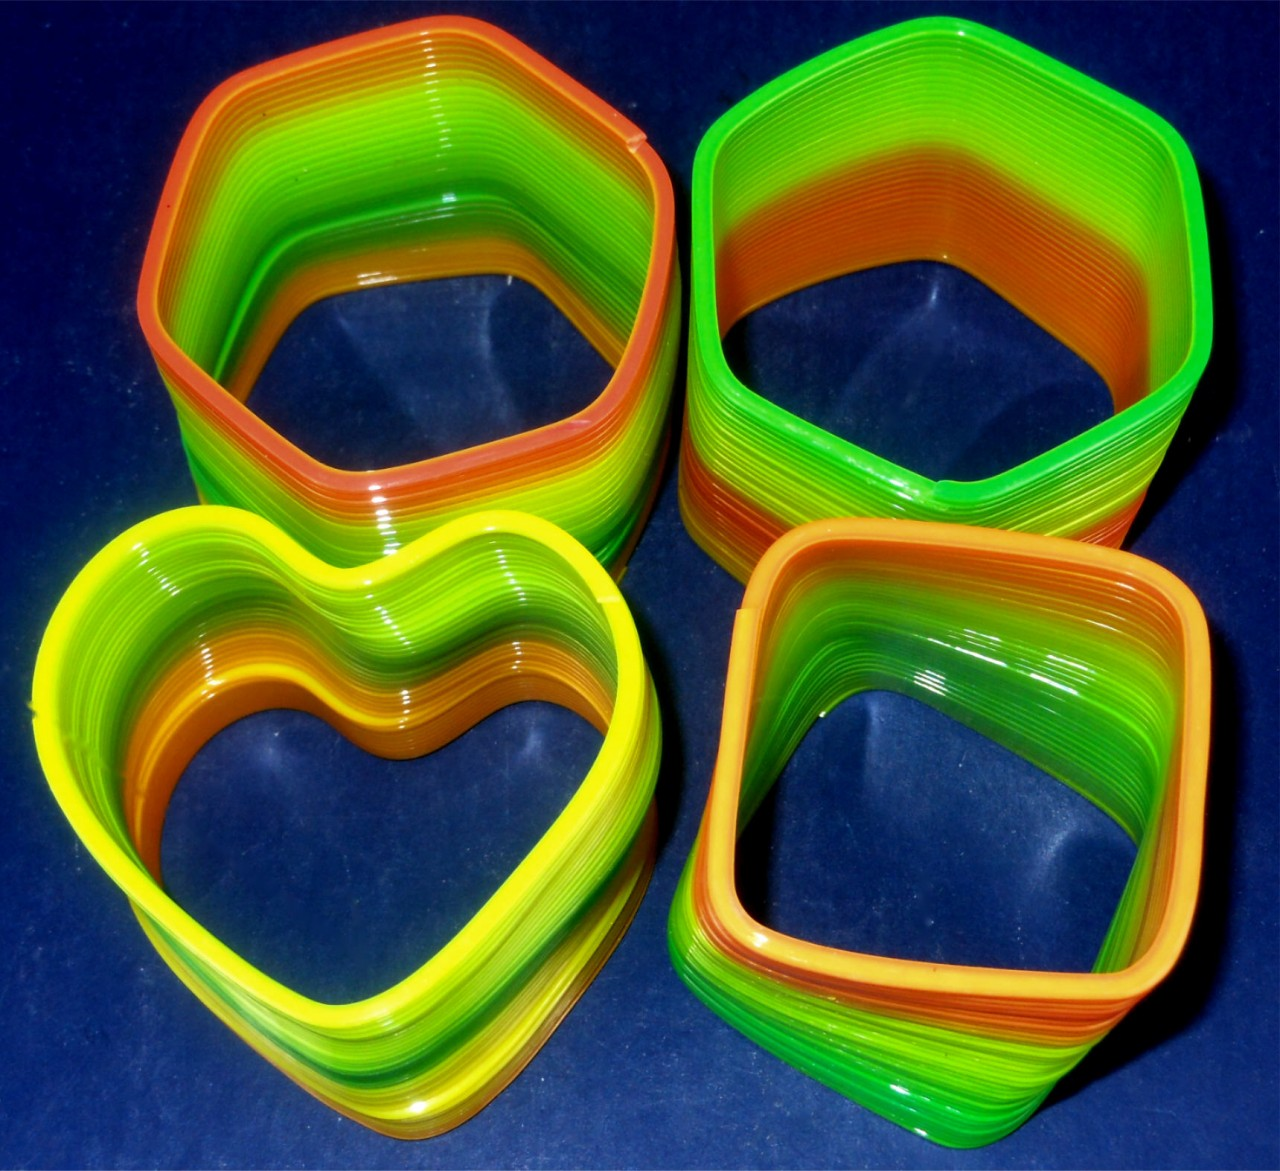 Assorted Shaped SLINKYs 12 per display box .50 EACH